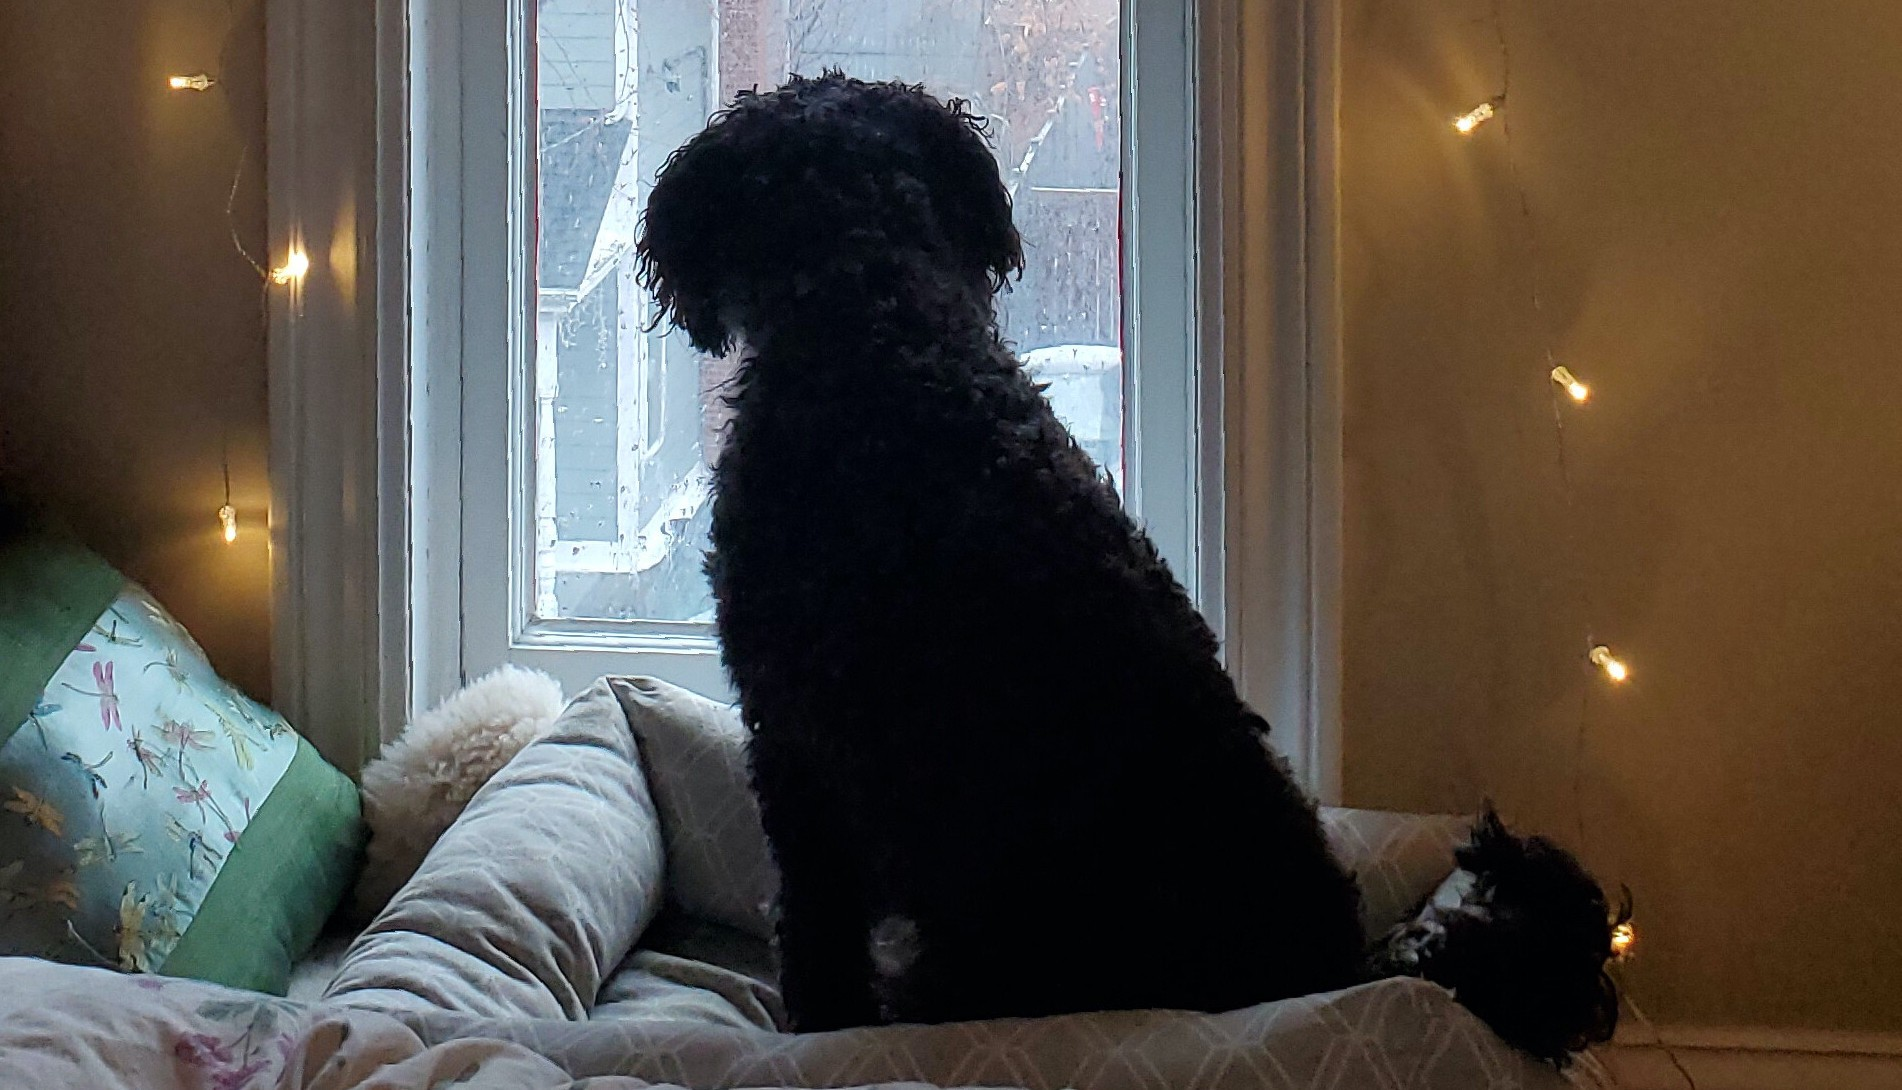 A black dog looking outside a window at the sun outside.